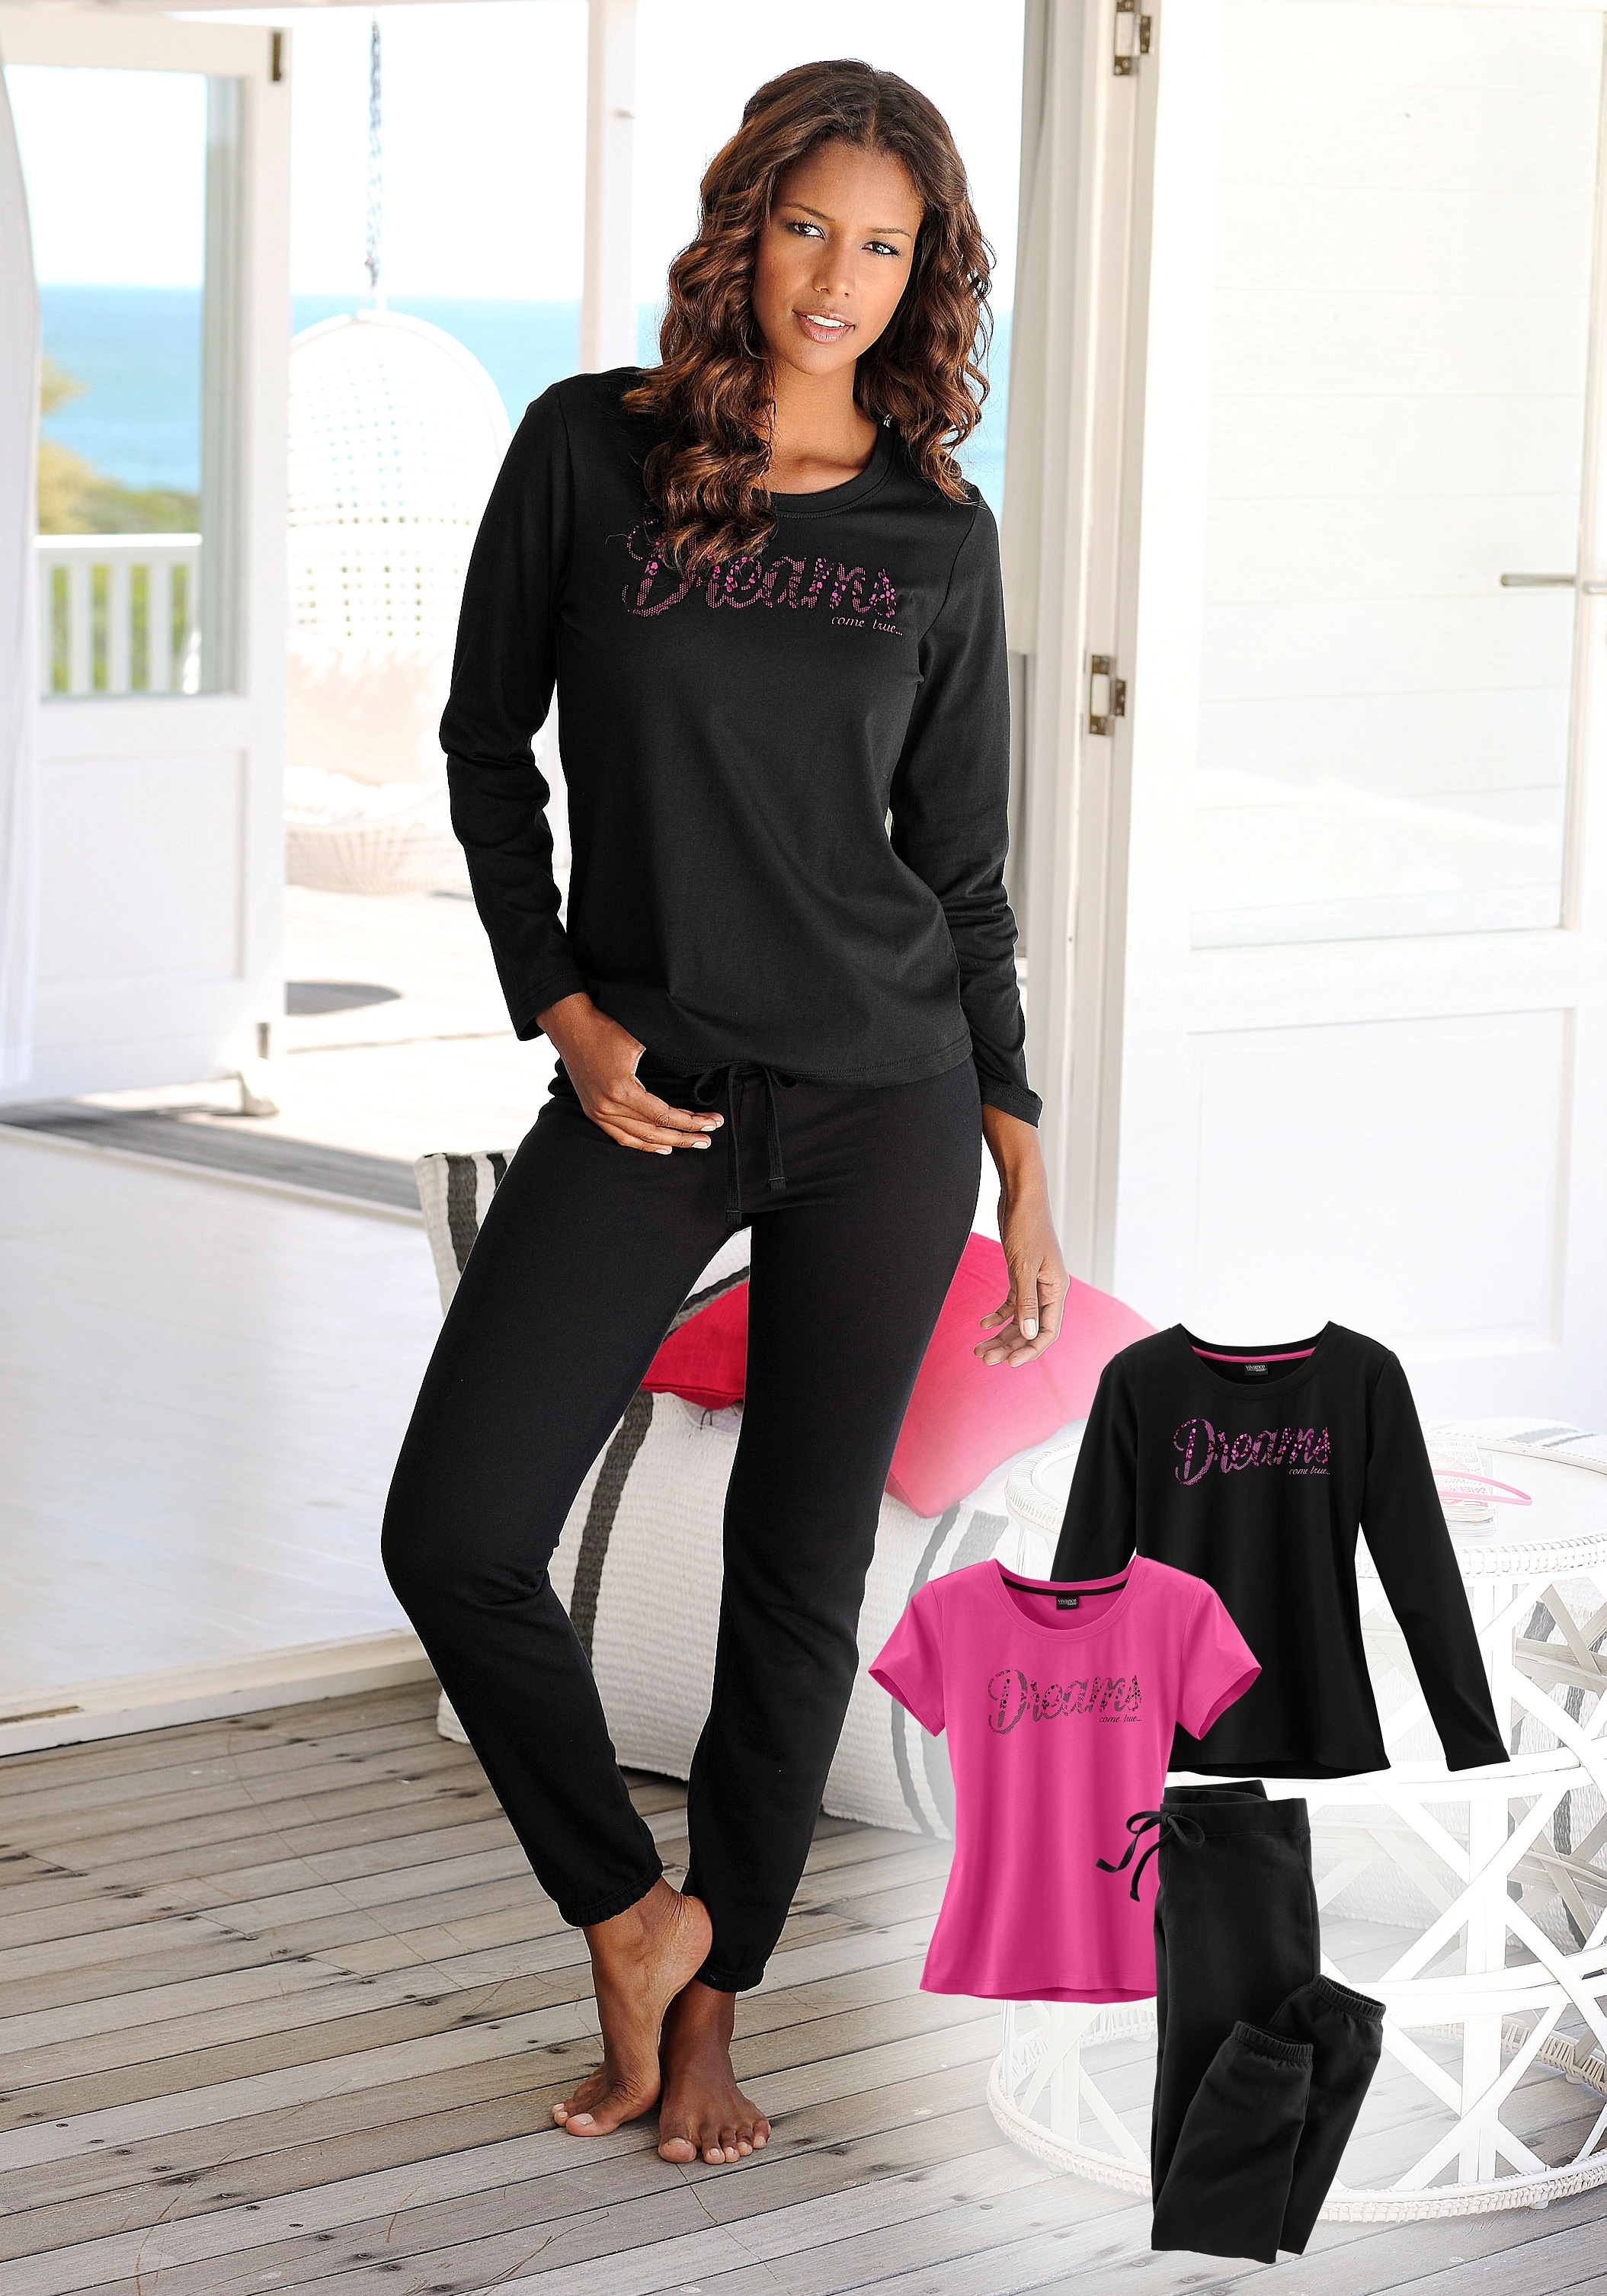 Vivance Collection VIVANCE DREAMS Pyjama in 3-delige set bij Lascana online kopen